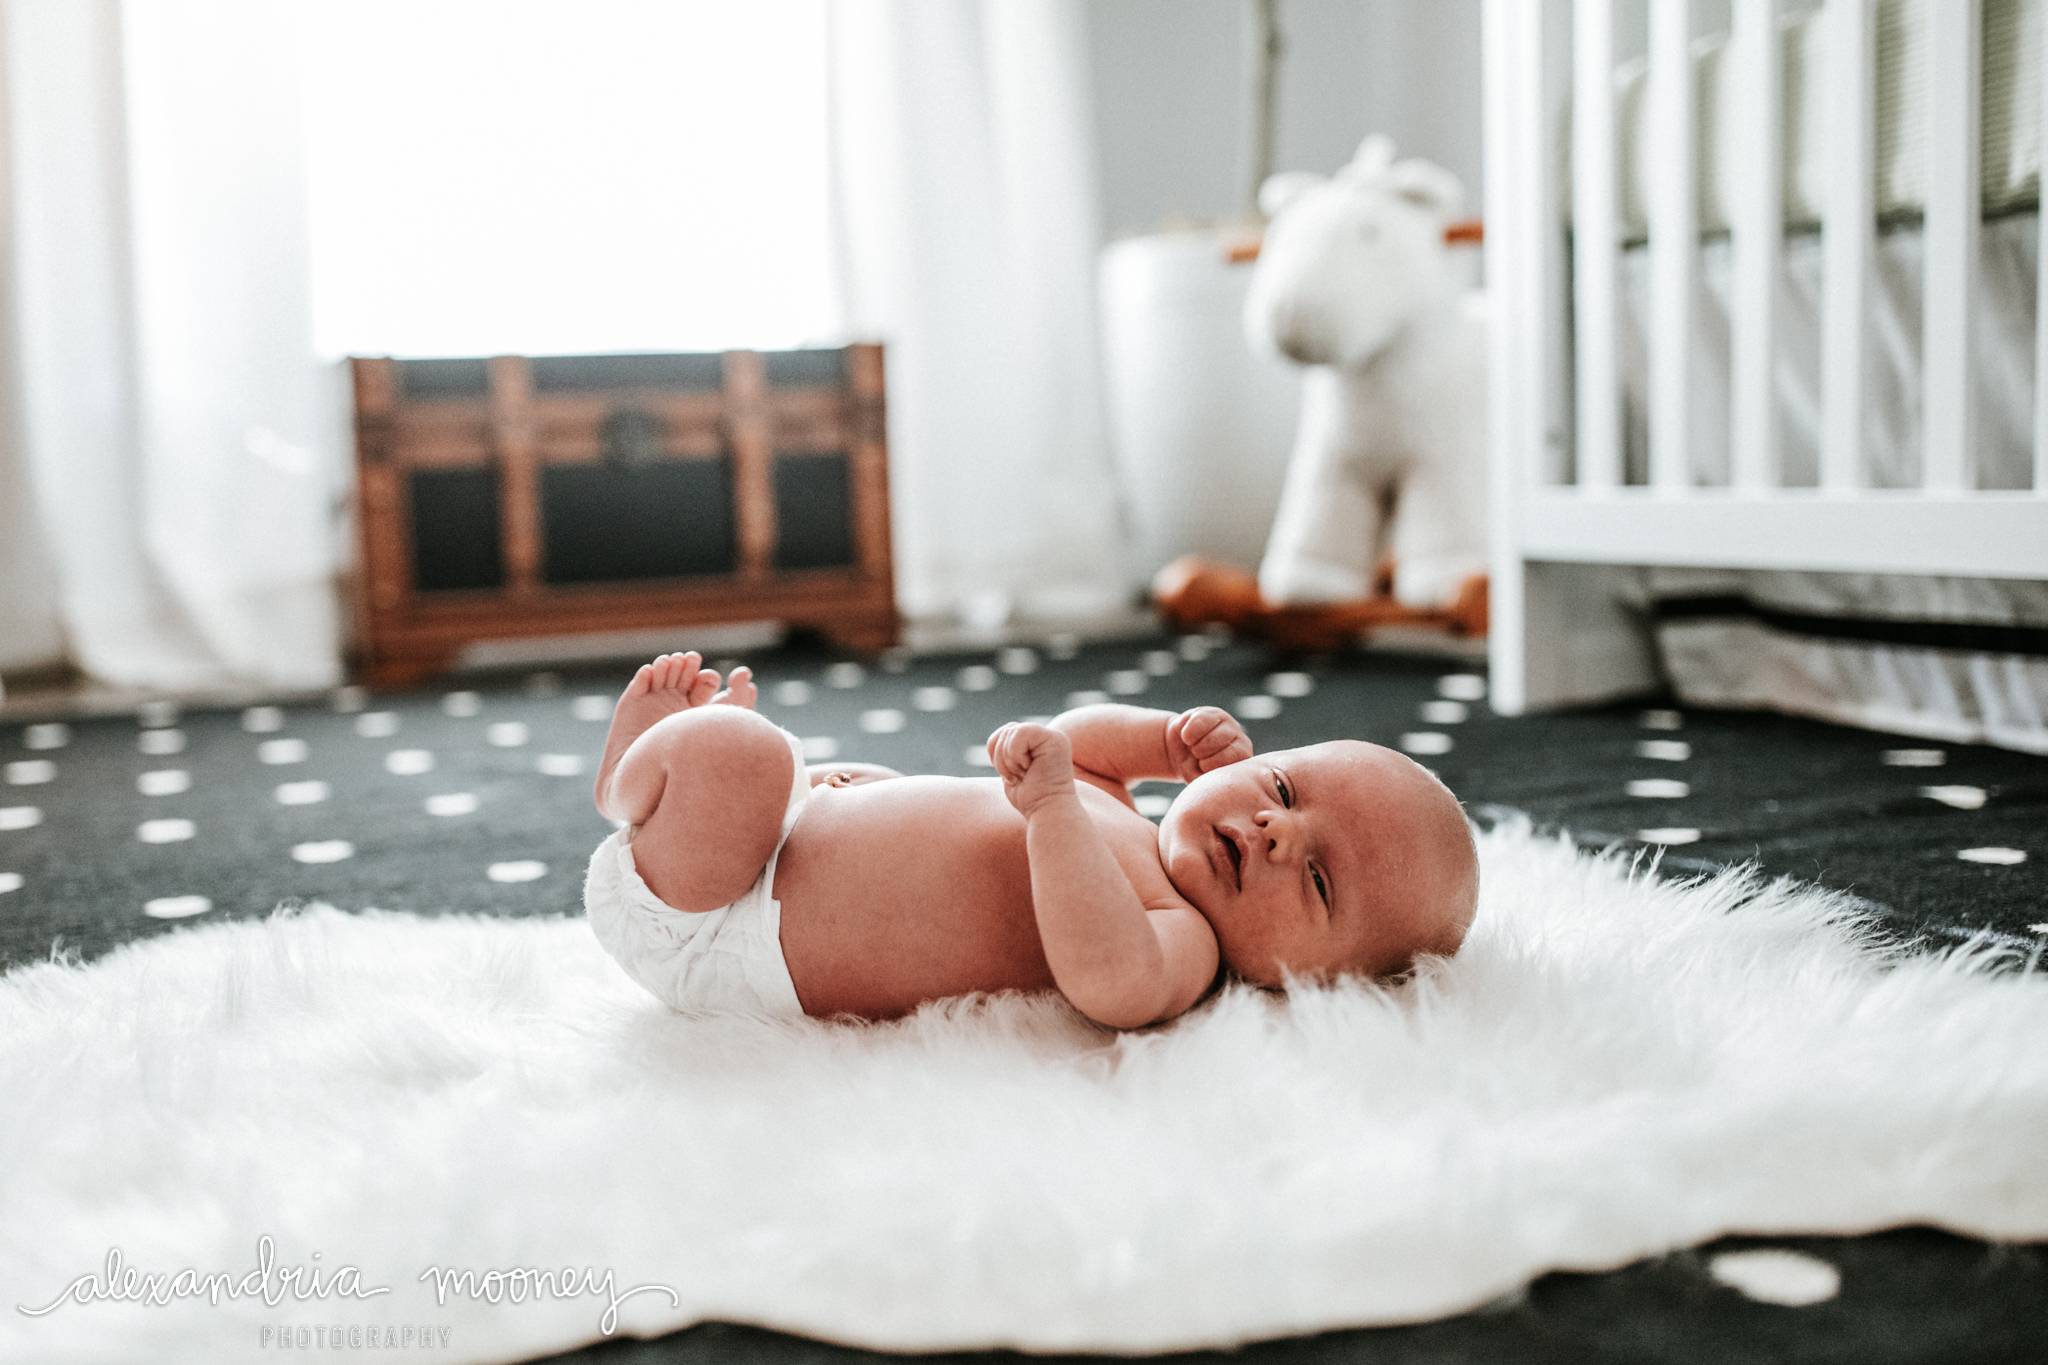 Liam_Newborn_watermarked-2.jpg